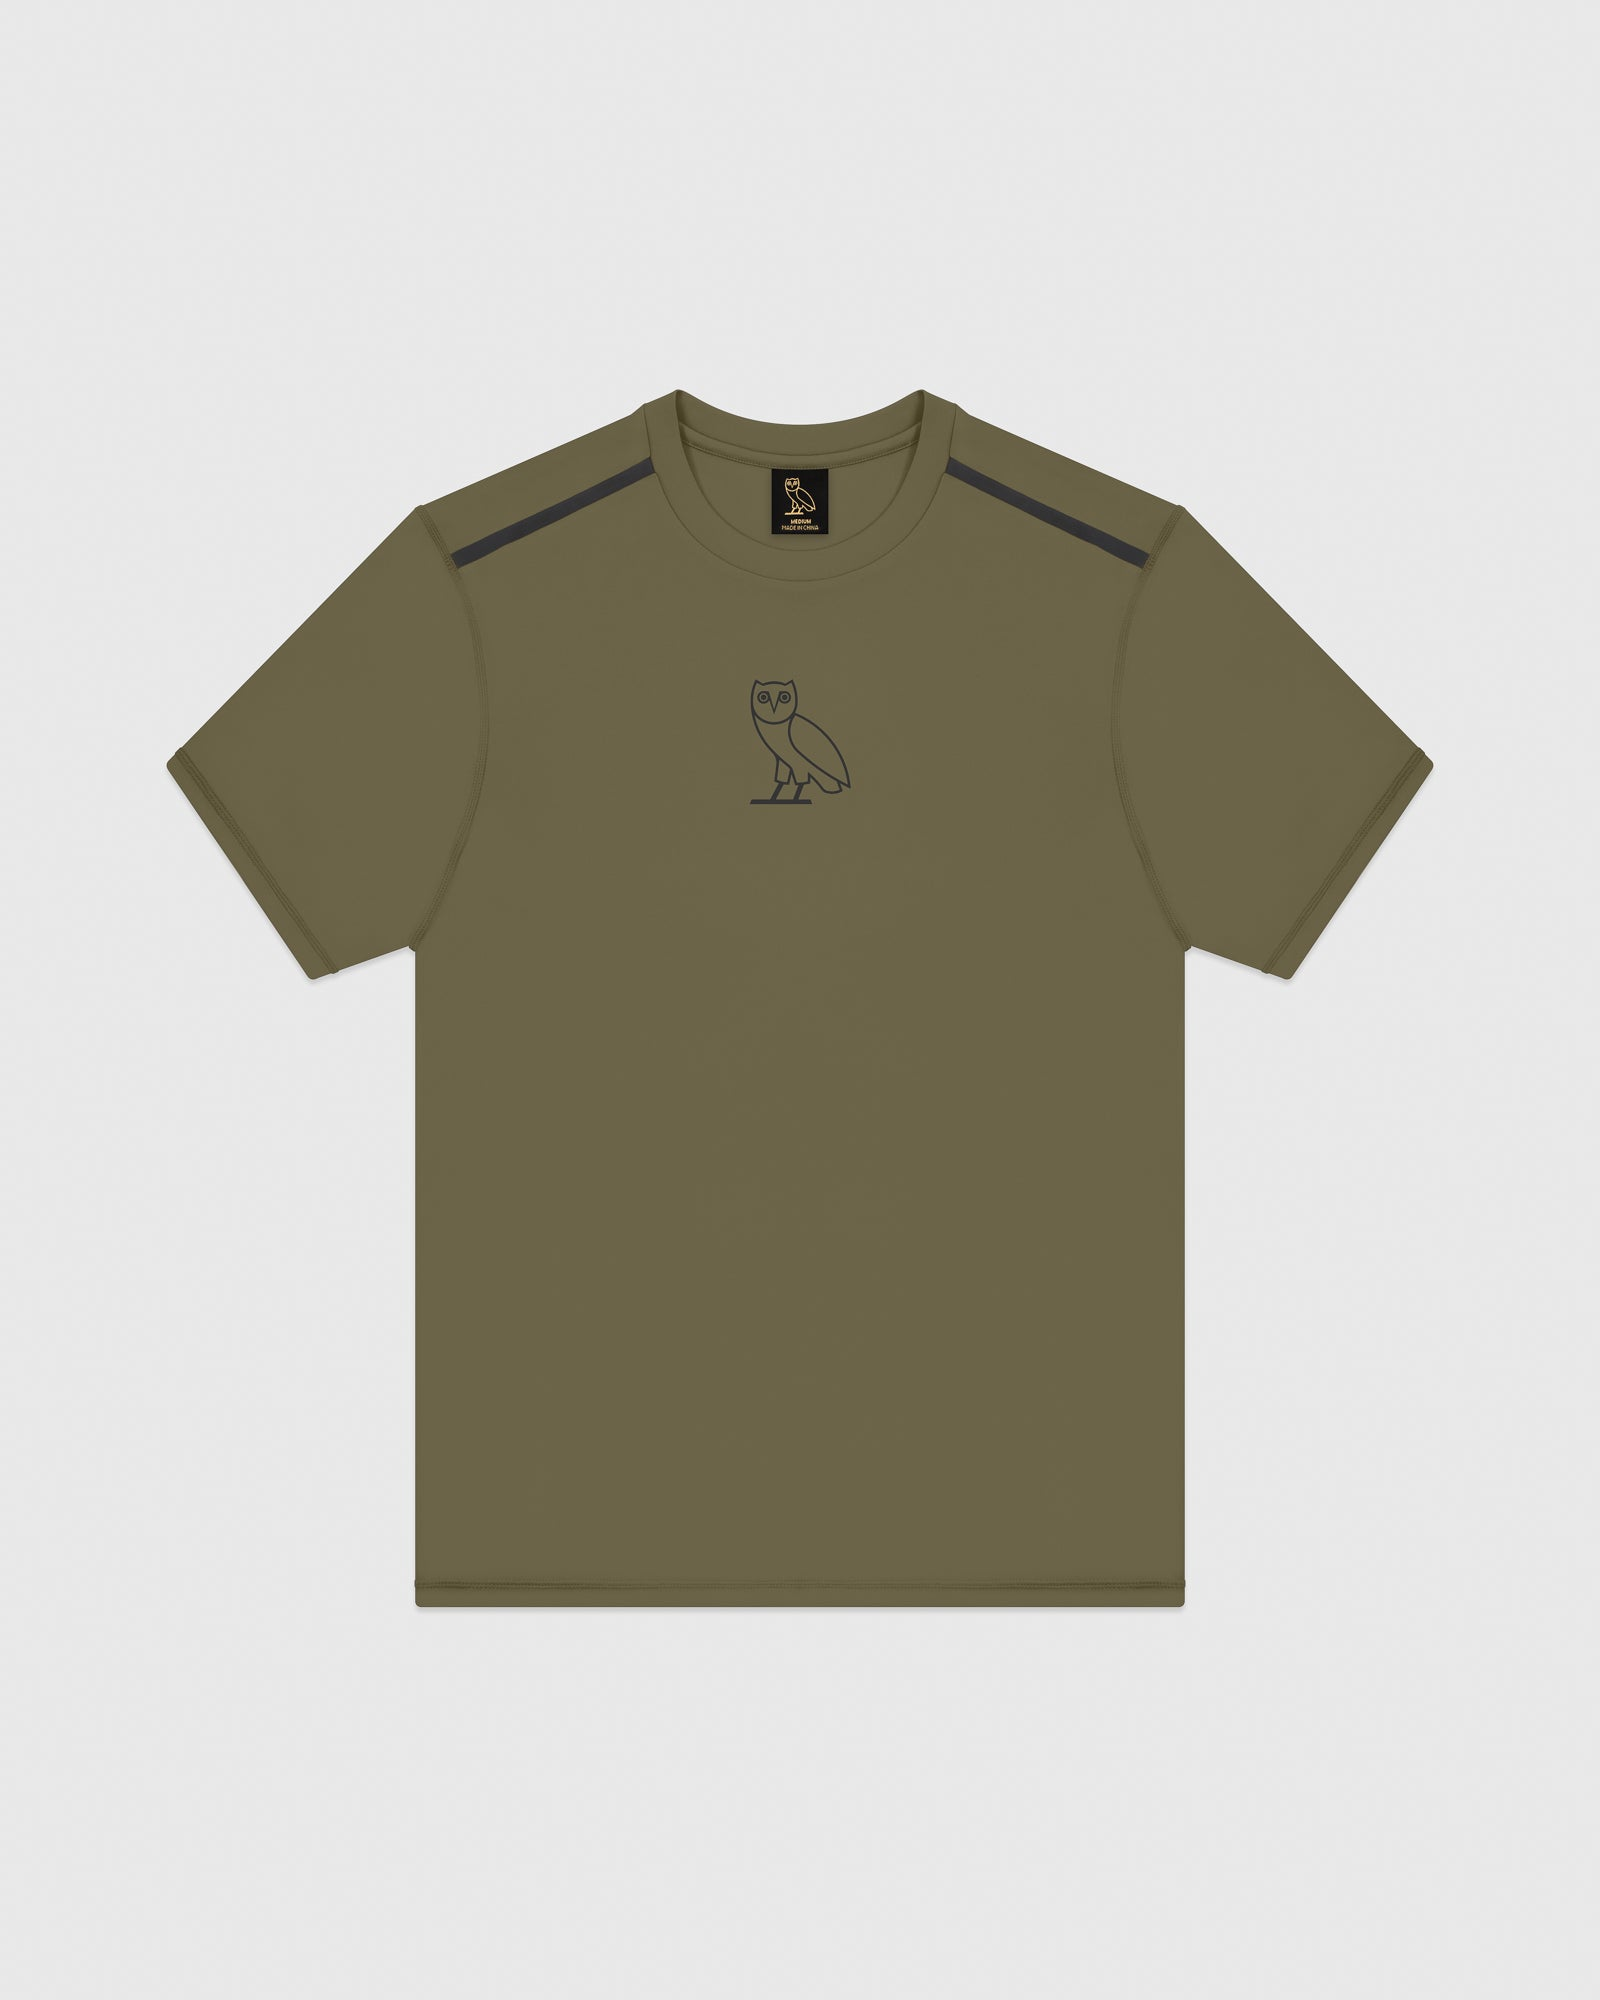 OVO REFLECTIVE PERFORMANCE T-SHIRT - LIGHT STONE GREEN